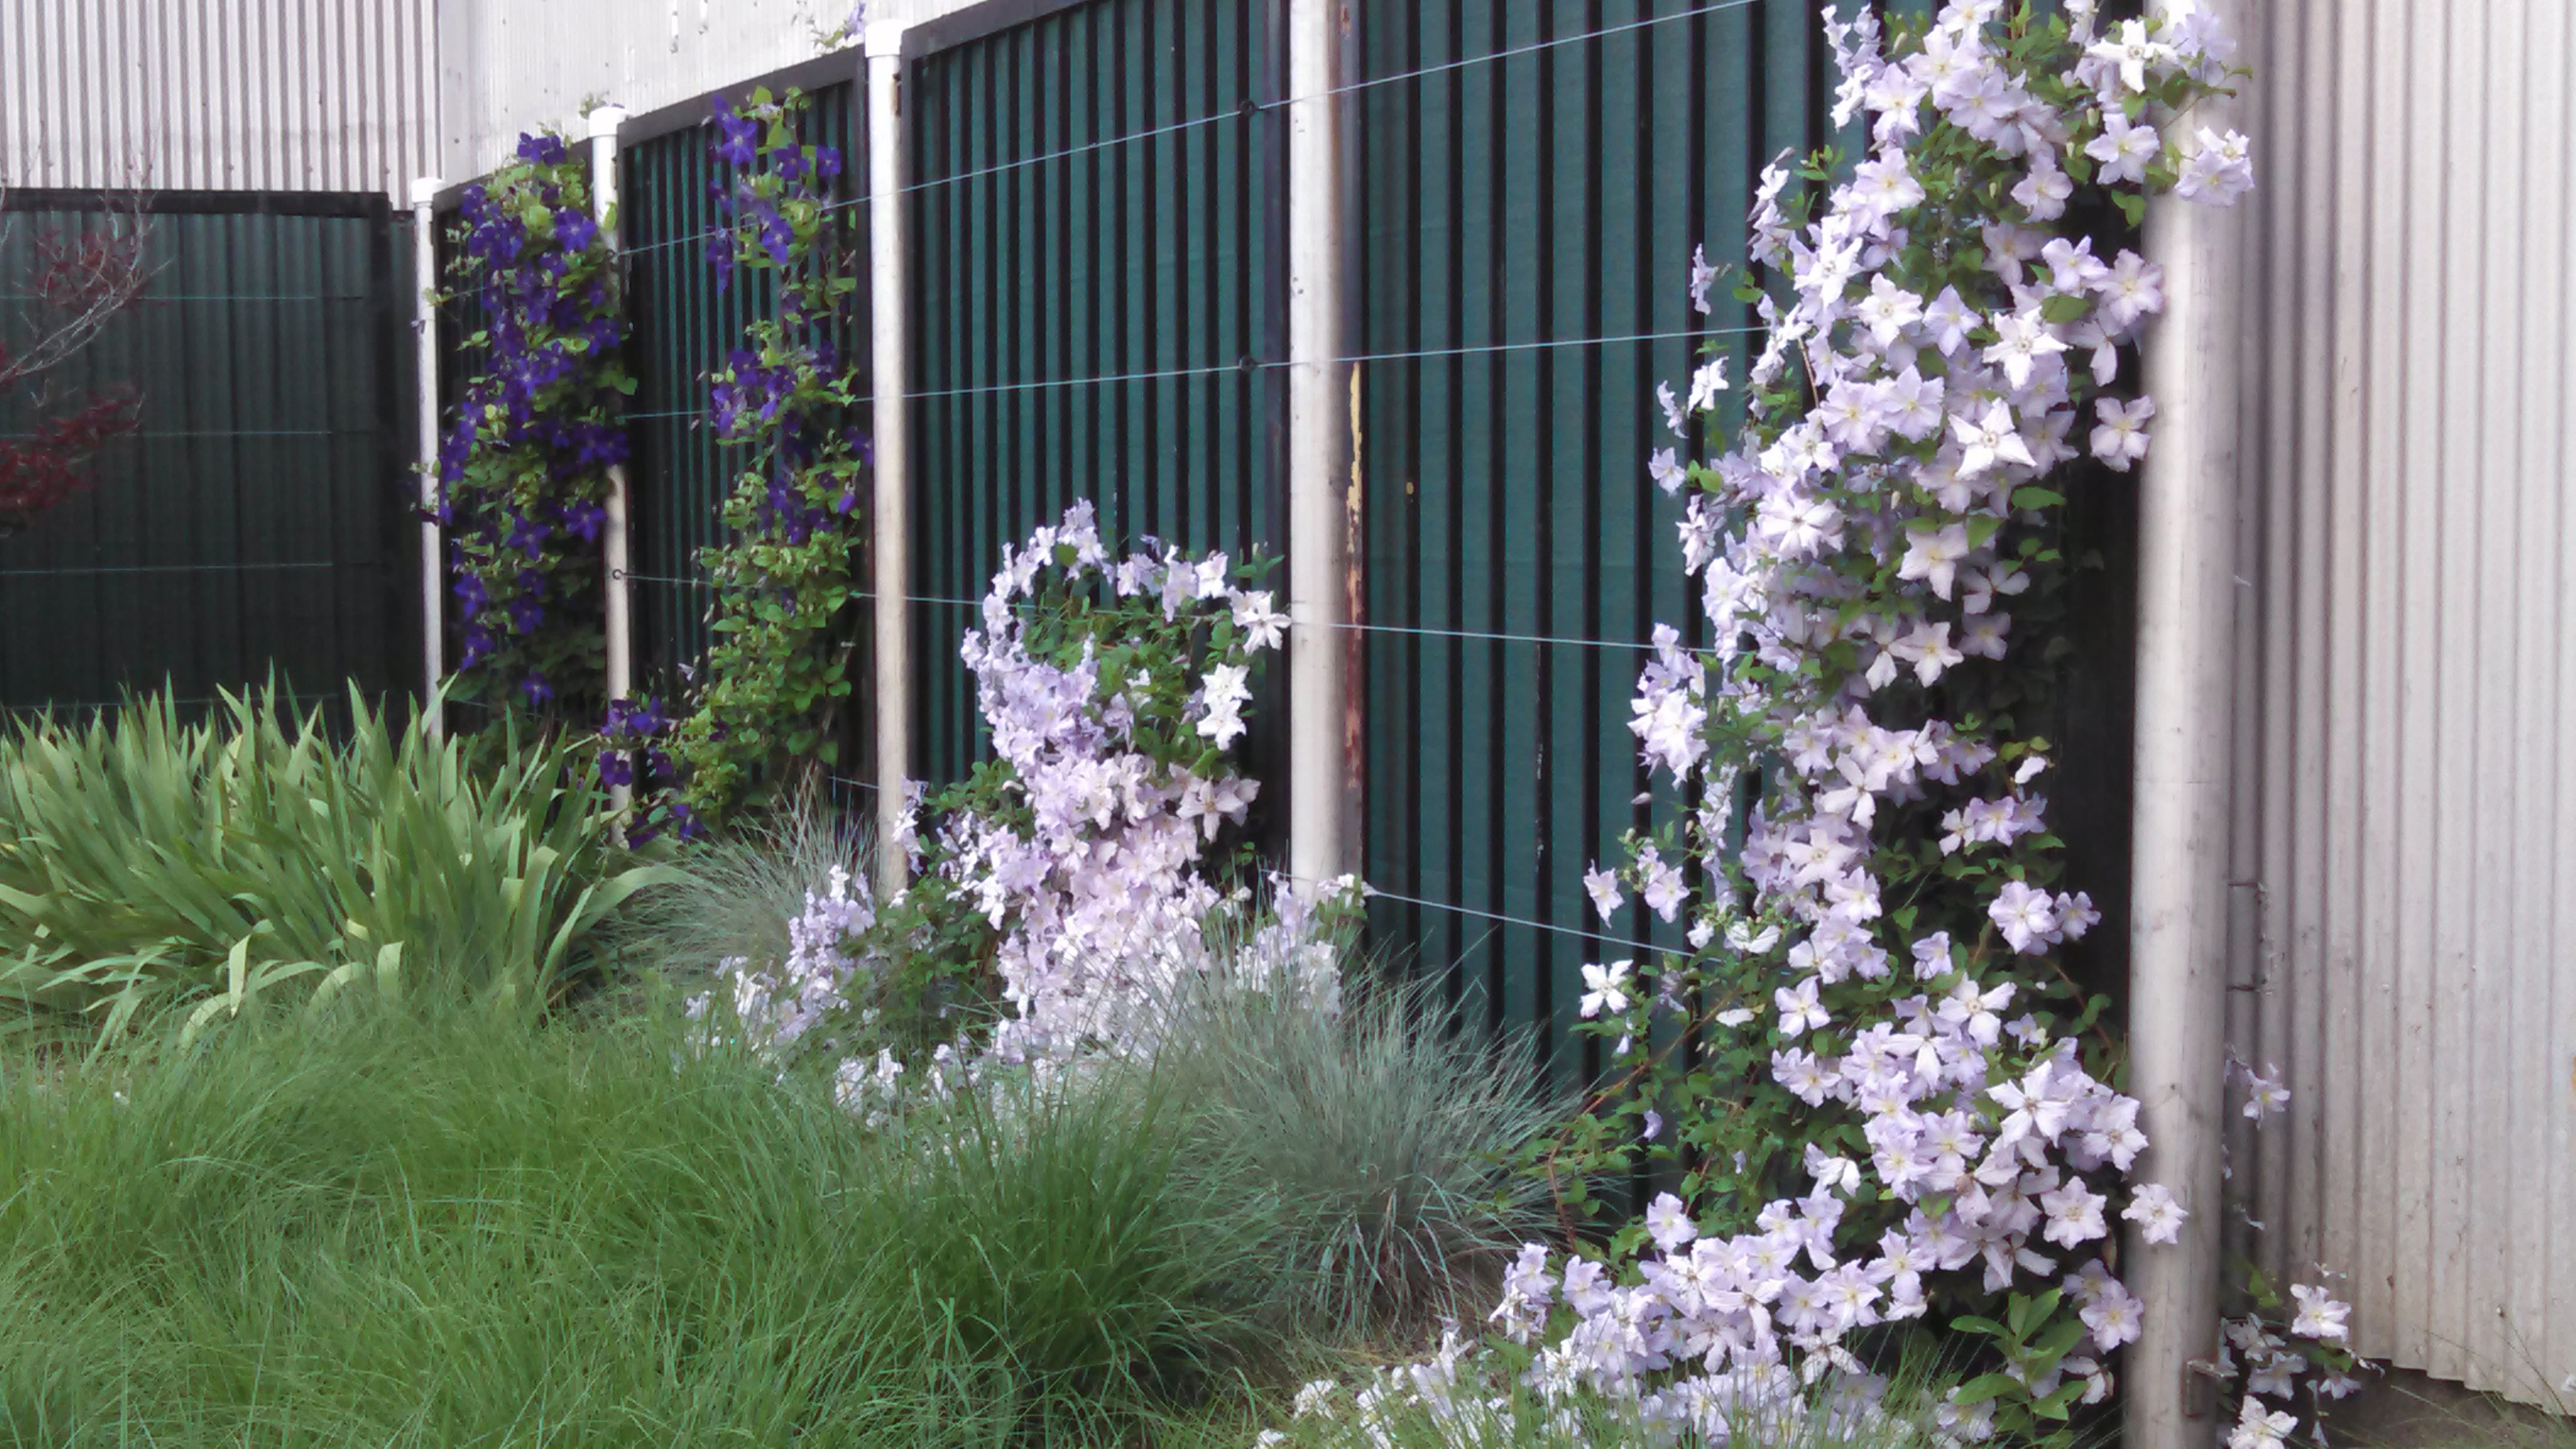 Blooming clematis vines climb the fence by the BEG buliding. Photo: Barb Kristen, PPD